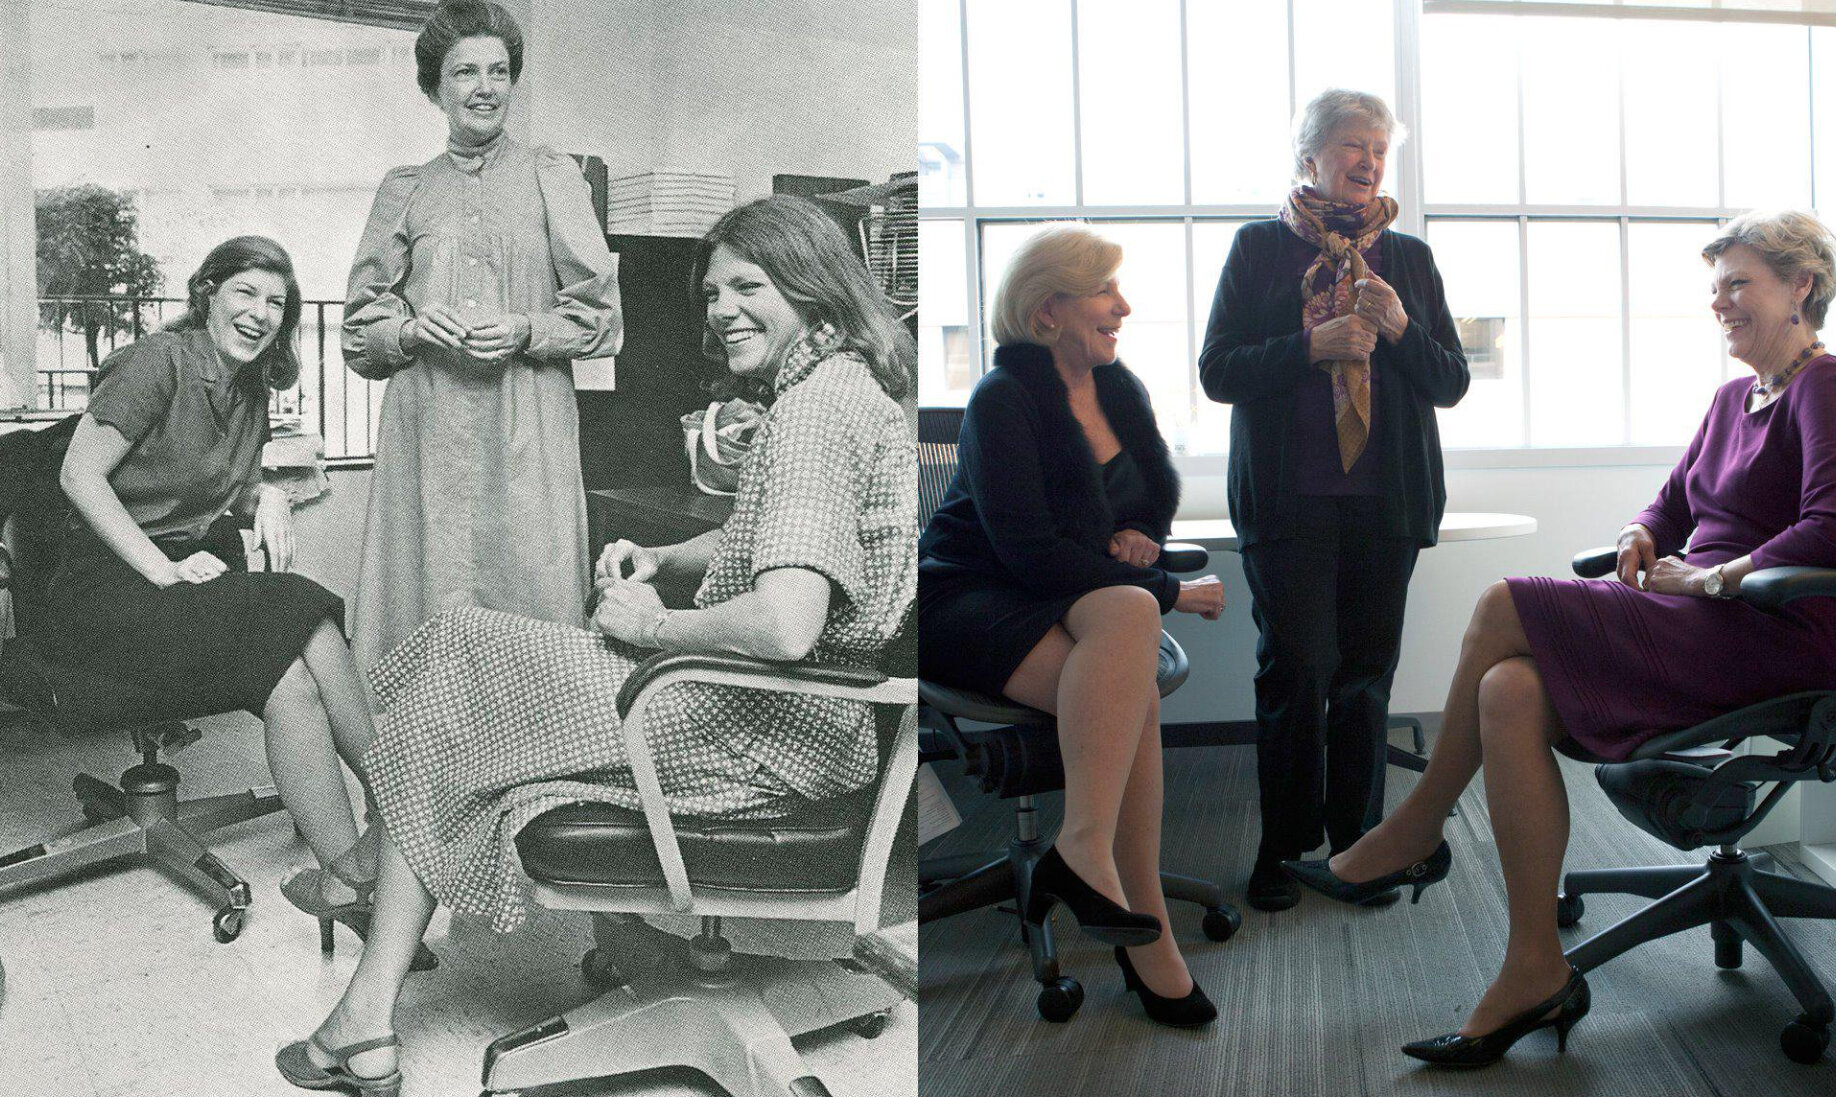 The Founding Mothers of NPR, circa 1979 and more recently (from left): Nina Totenberg, Linda Wertheimer, Cokie Roberts.